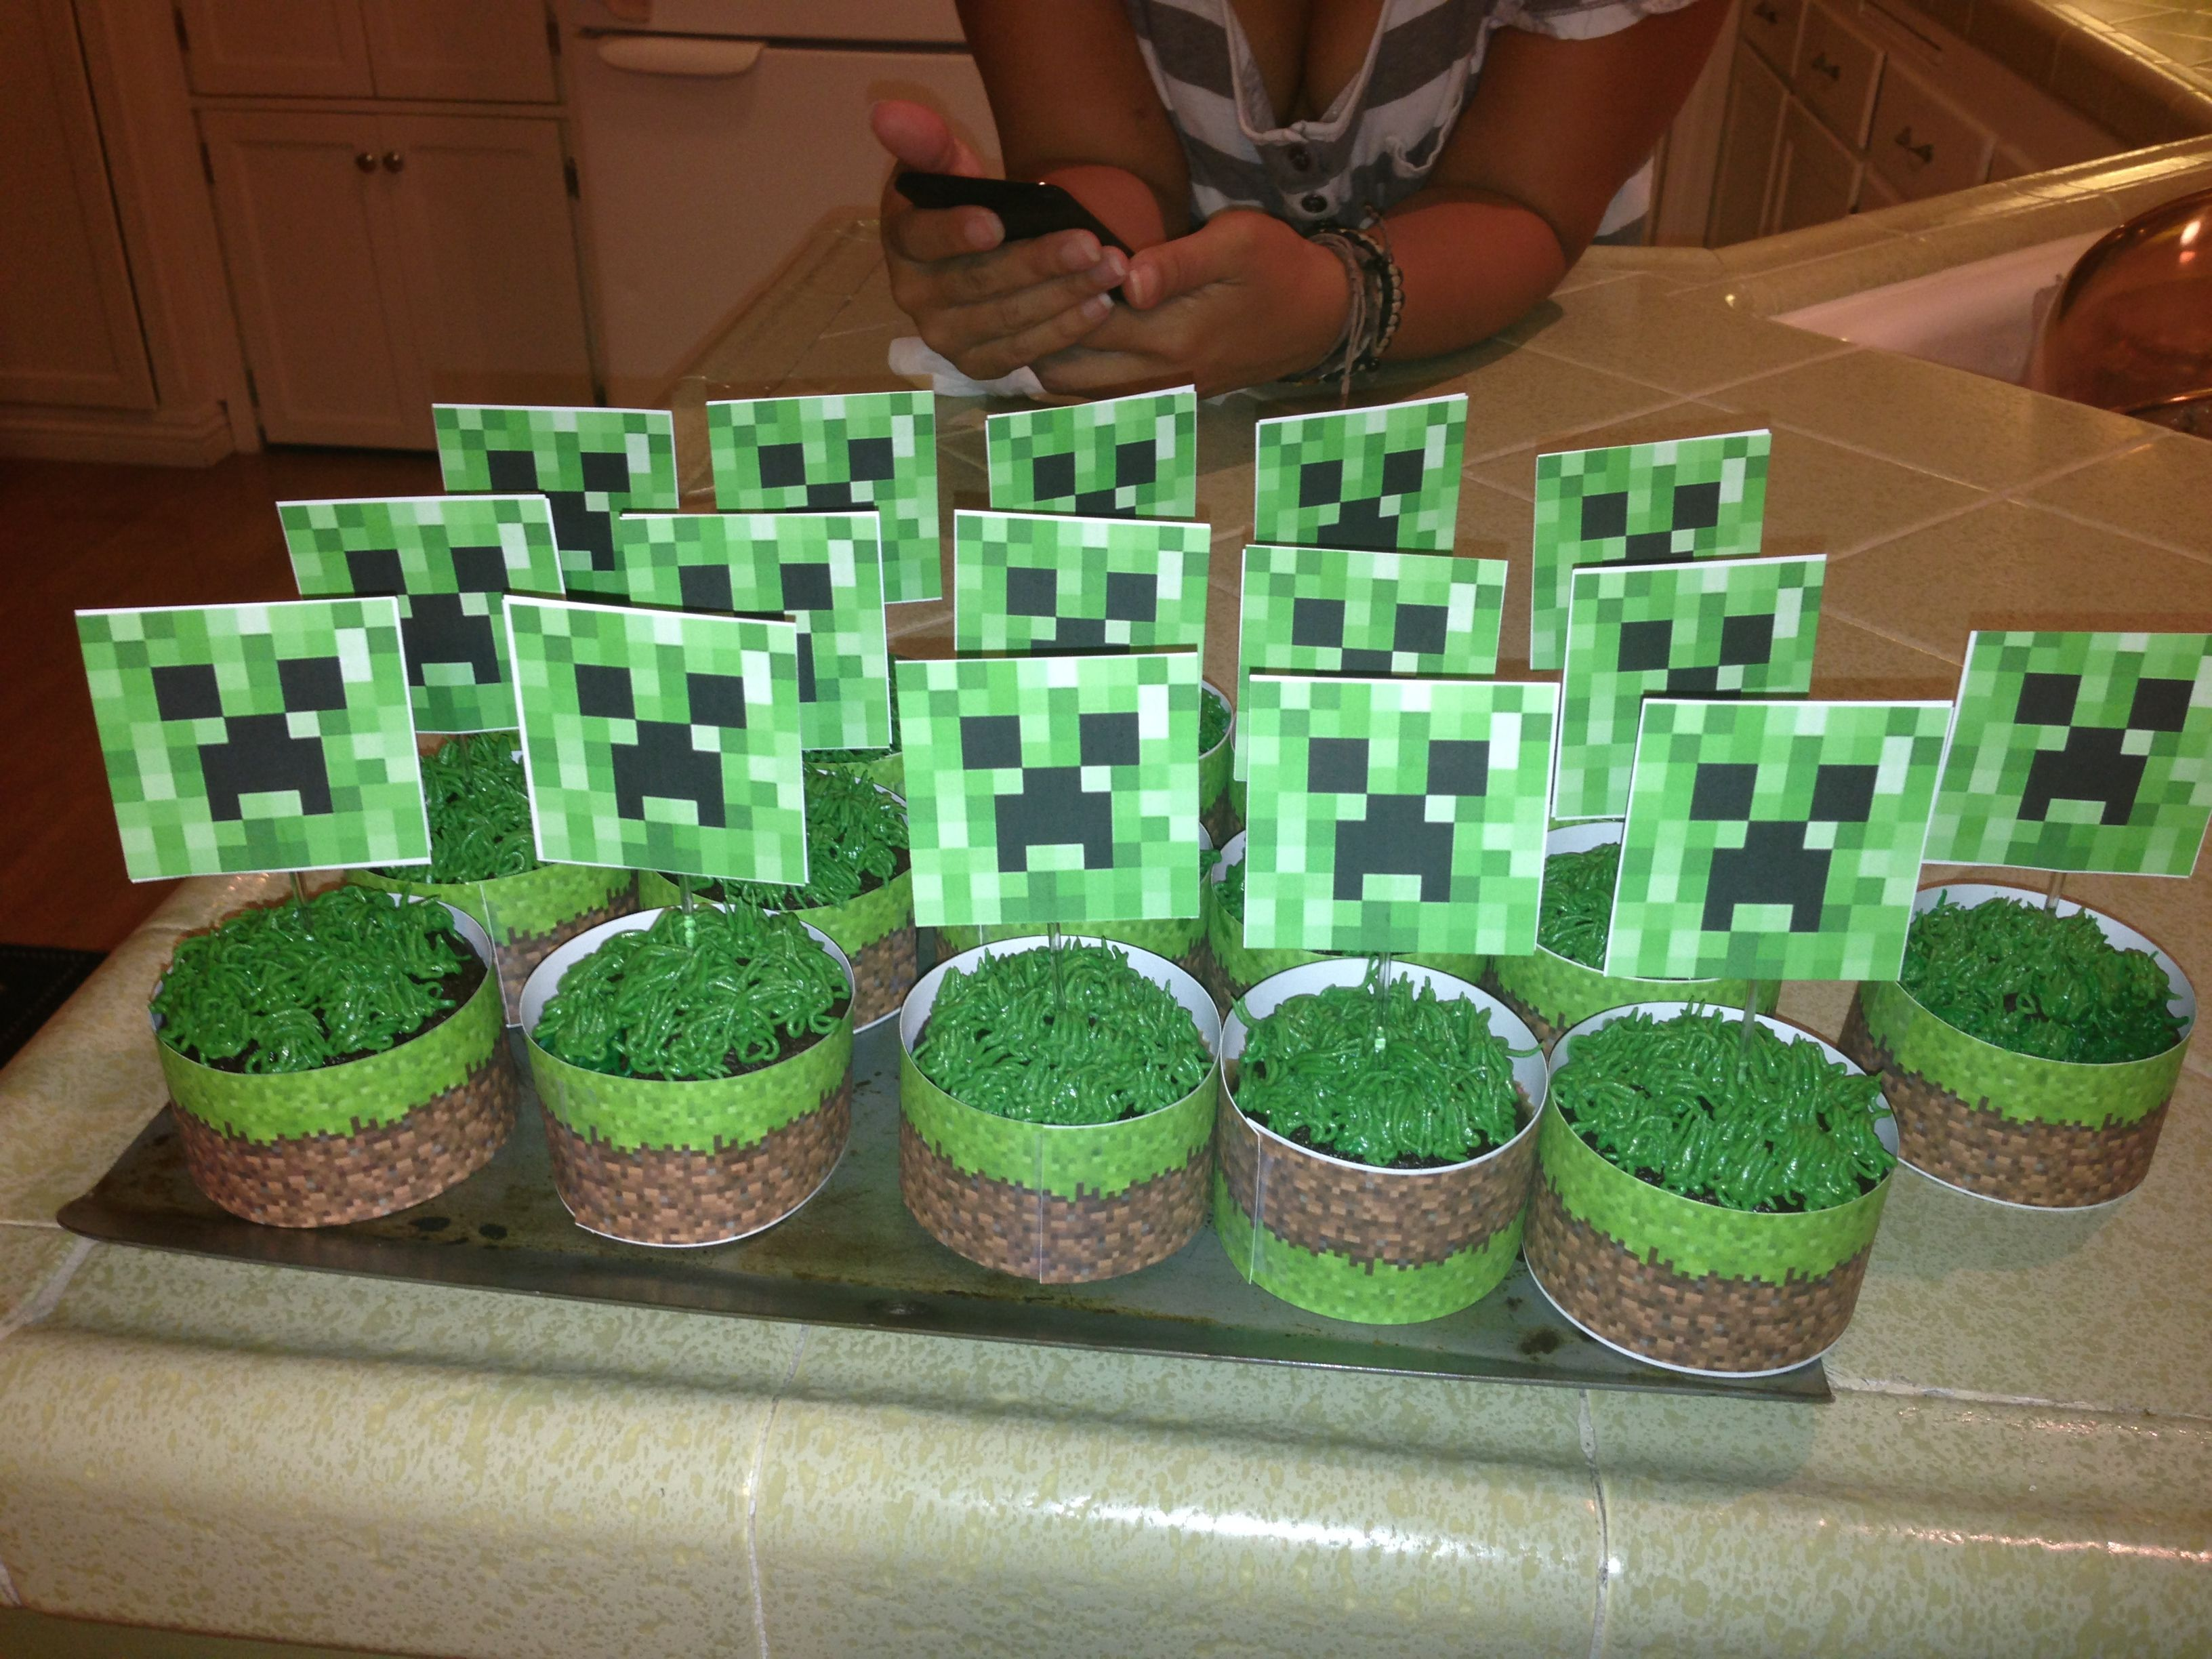 Minecraft Creeper Cupcakes | My DIY | Pinterest ...